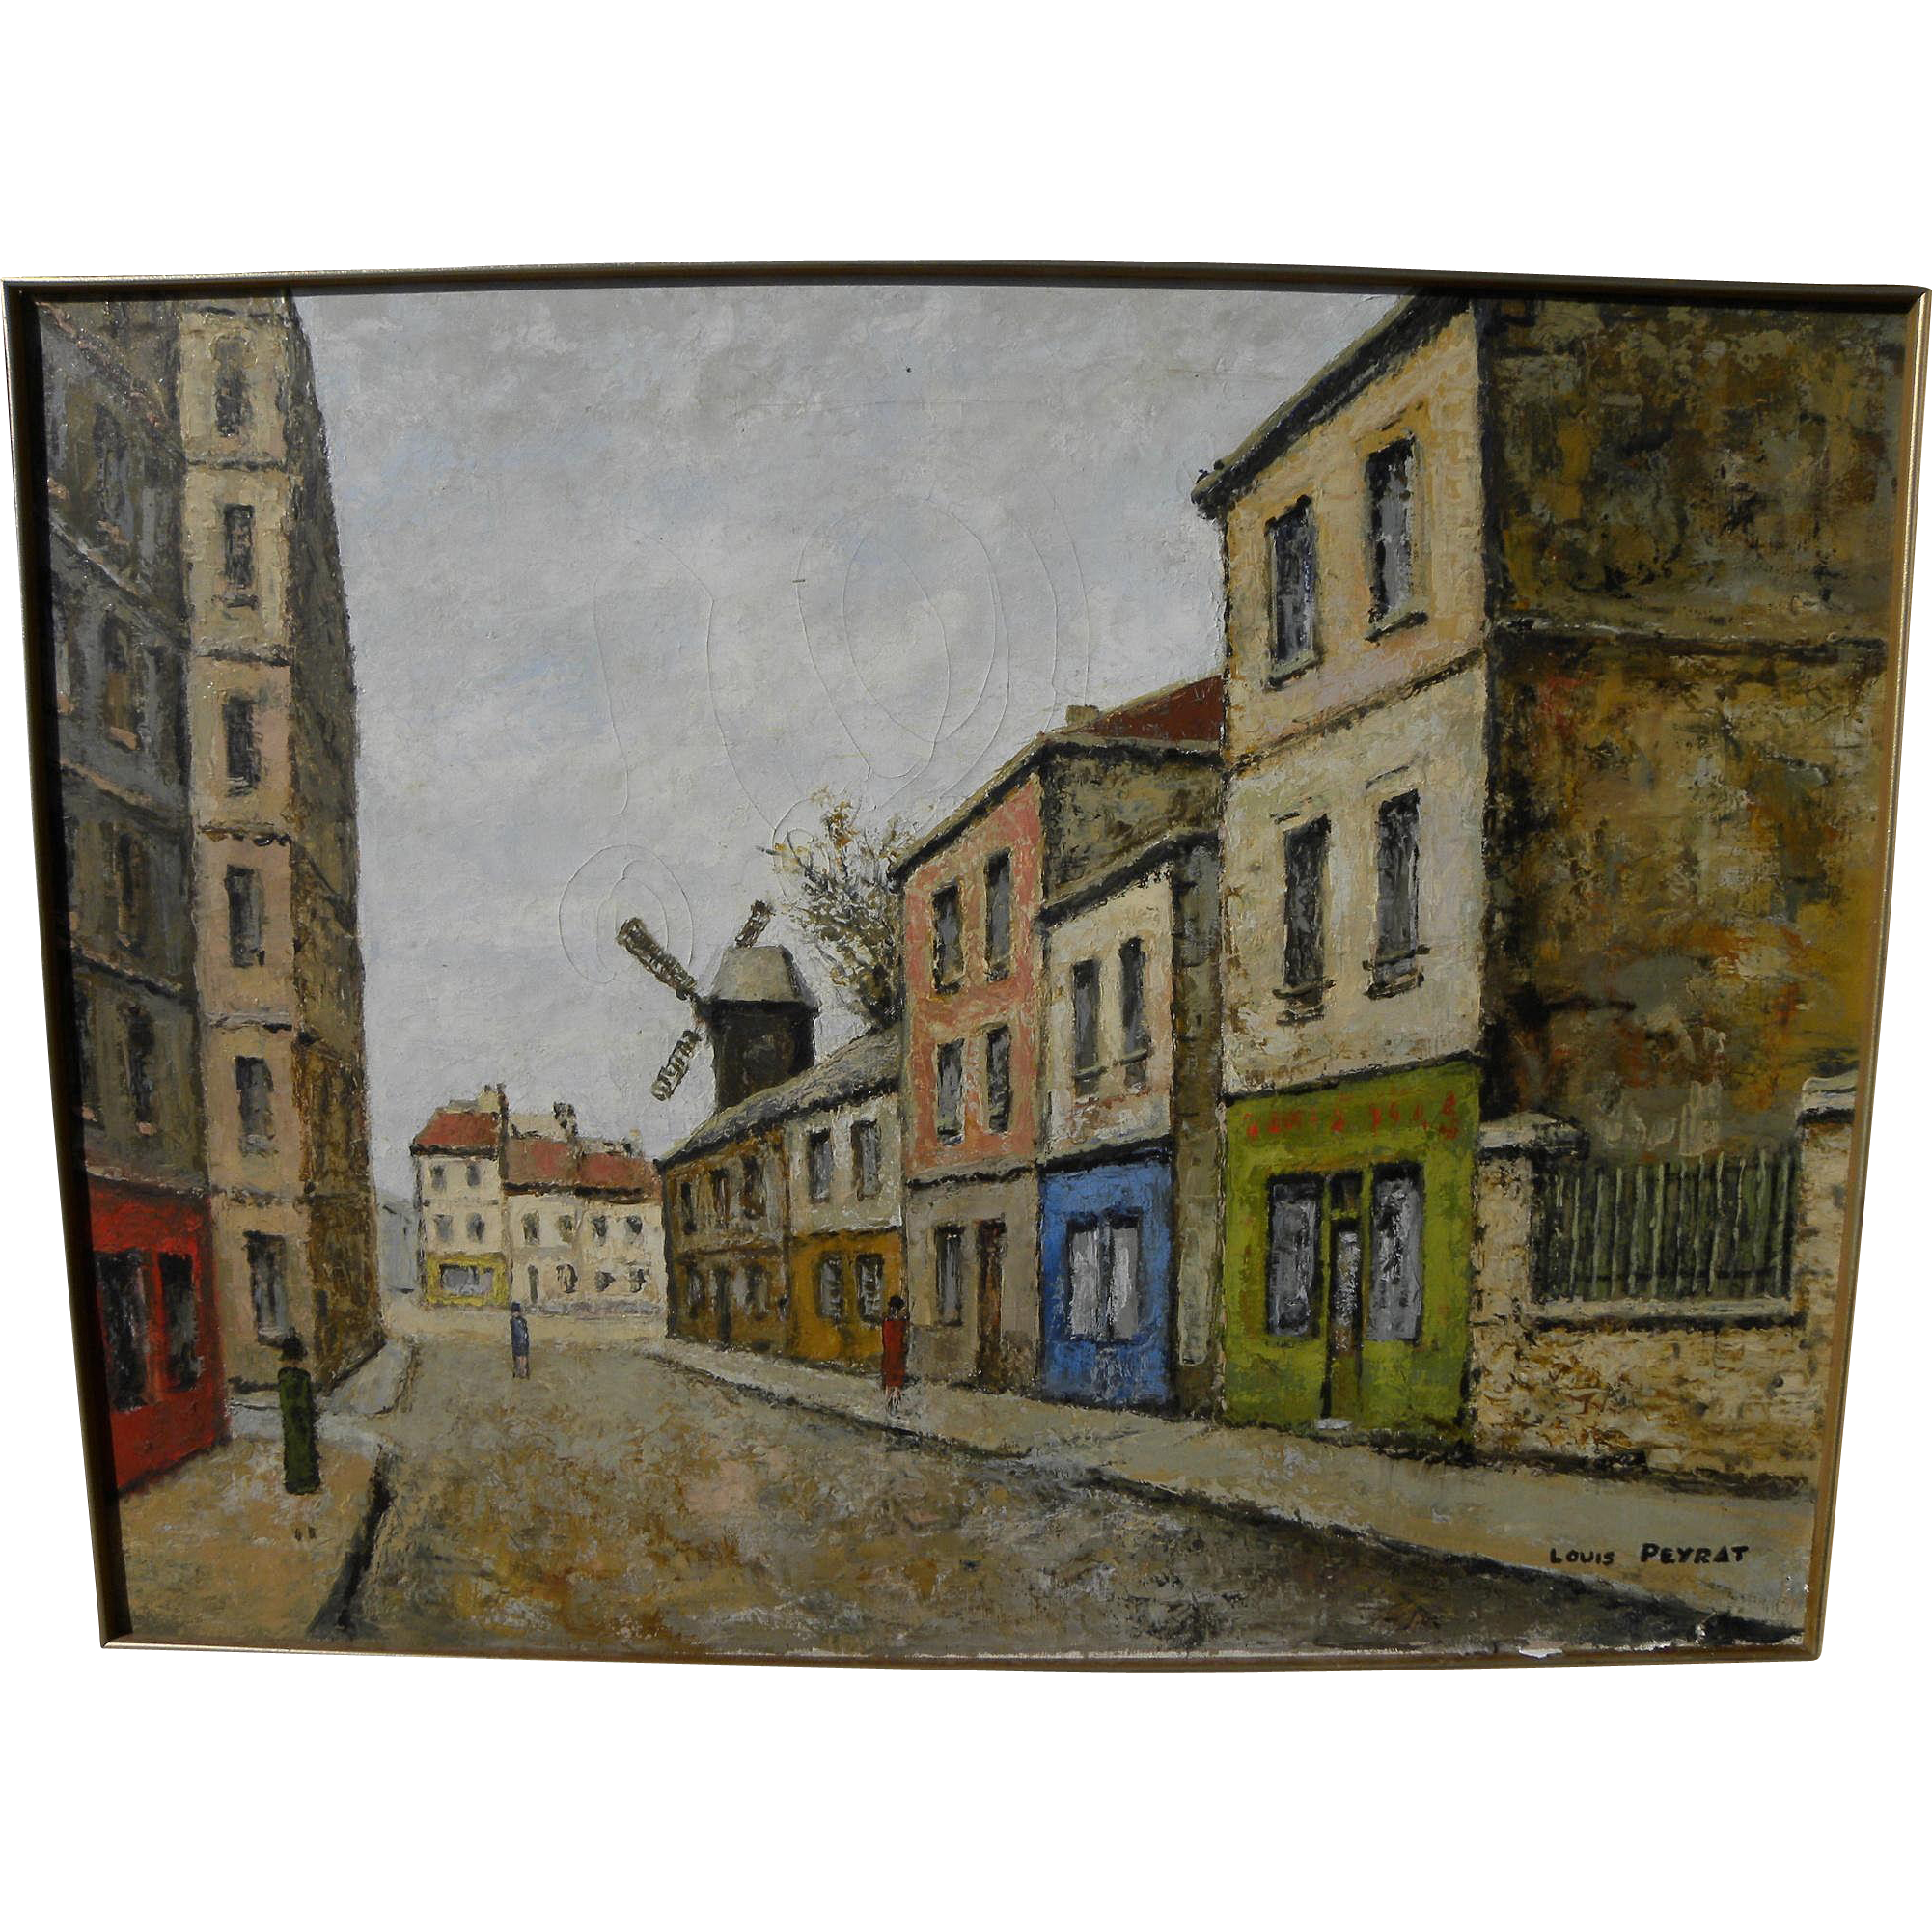 LOUIS PEYRAT (1905-1999) painting of Montmartre by noted French naive style artist